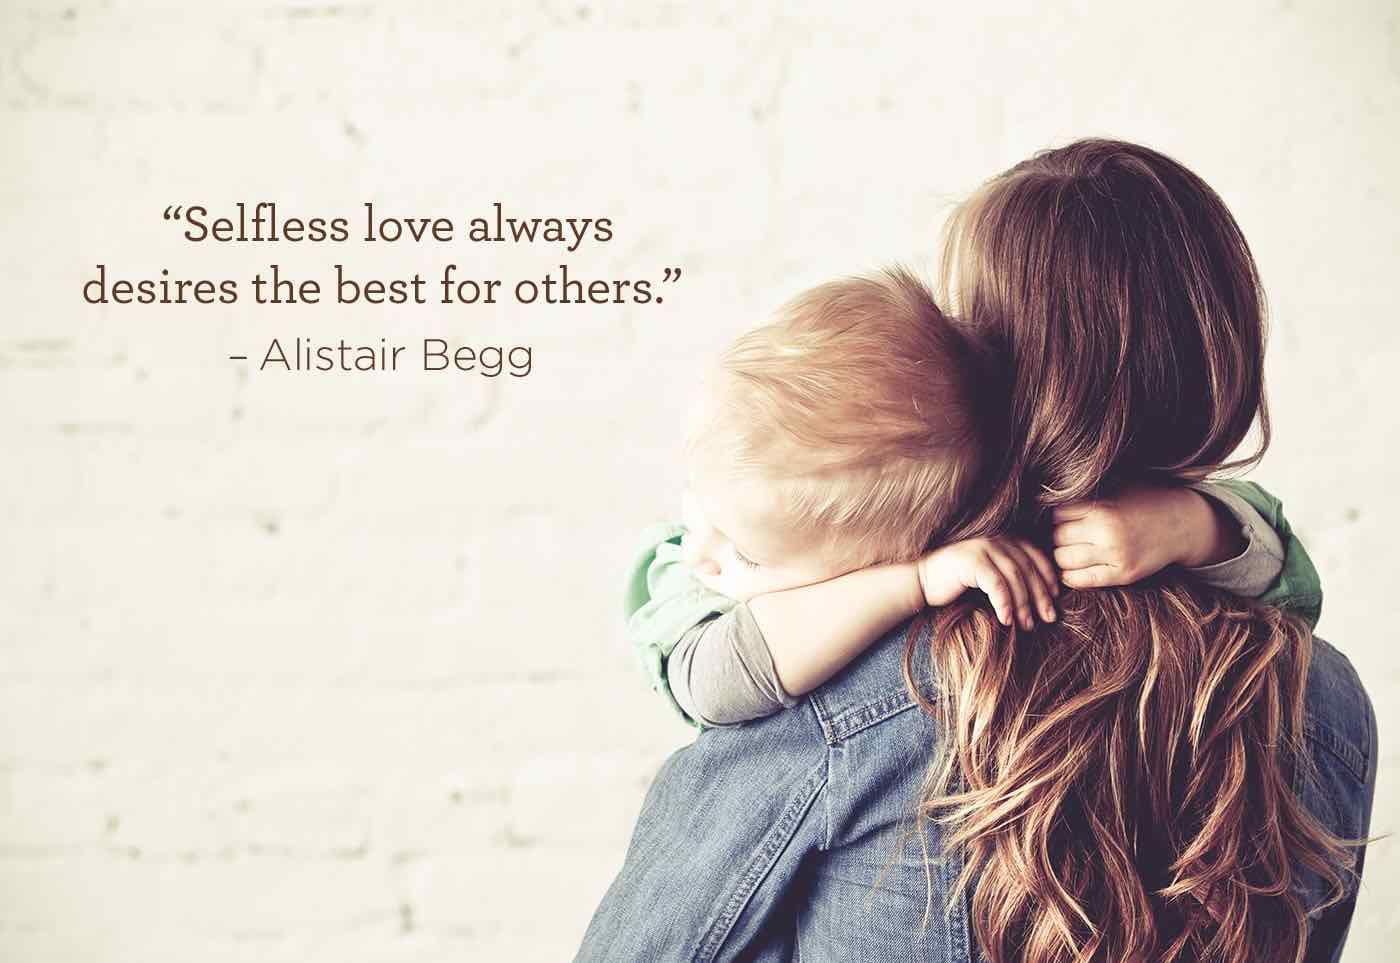 thumbnail image for Selfless love always desires the best for others